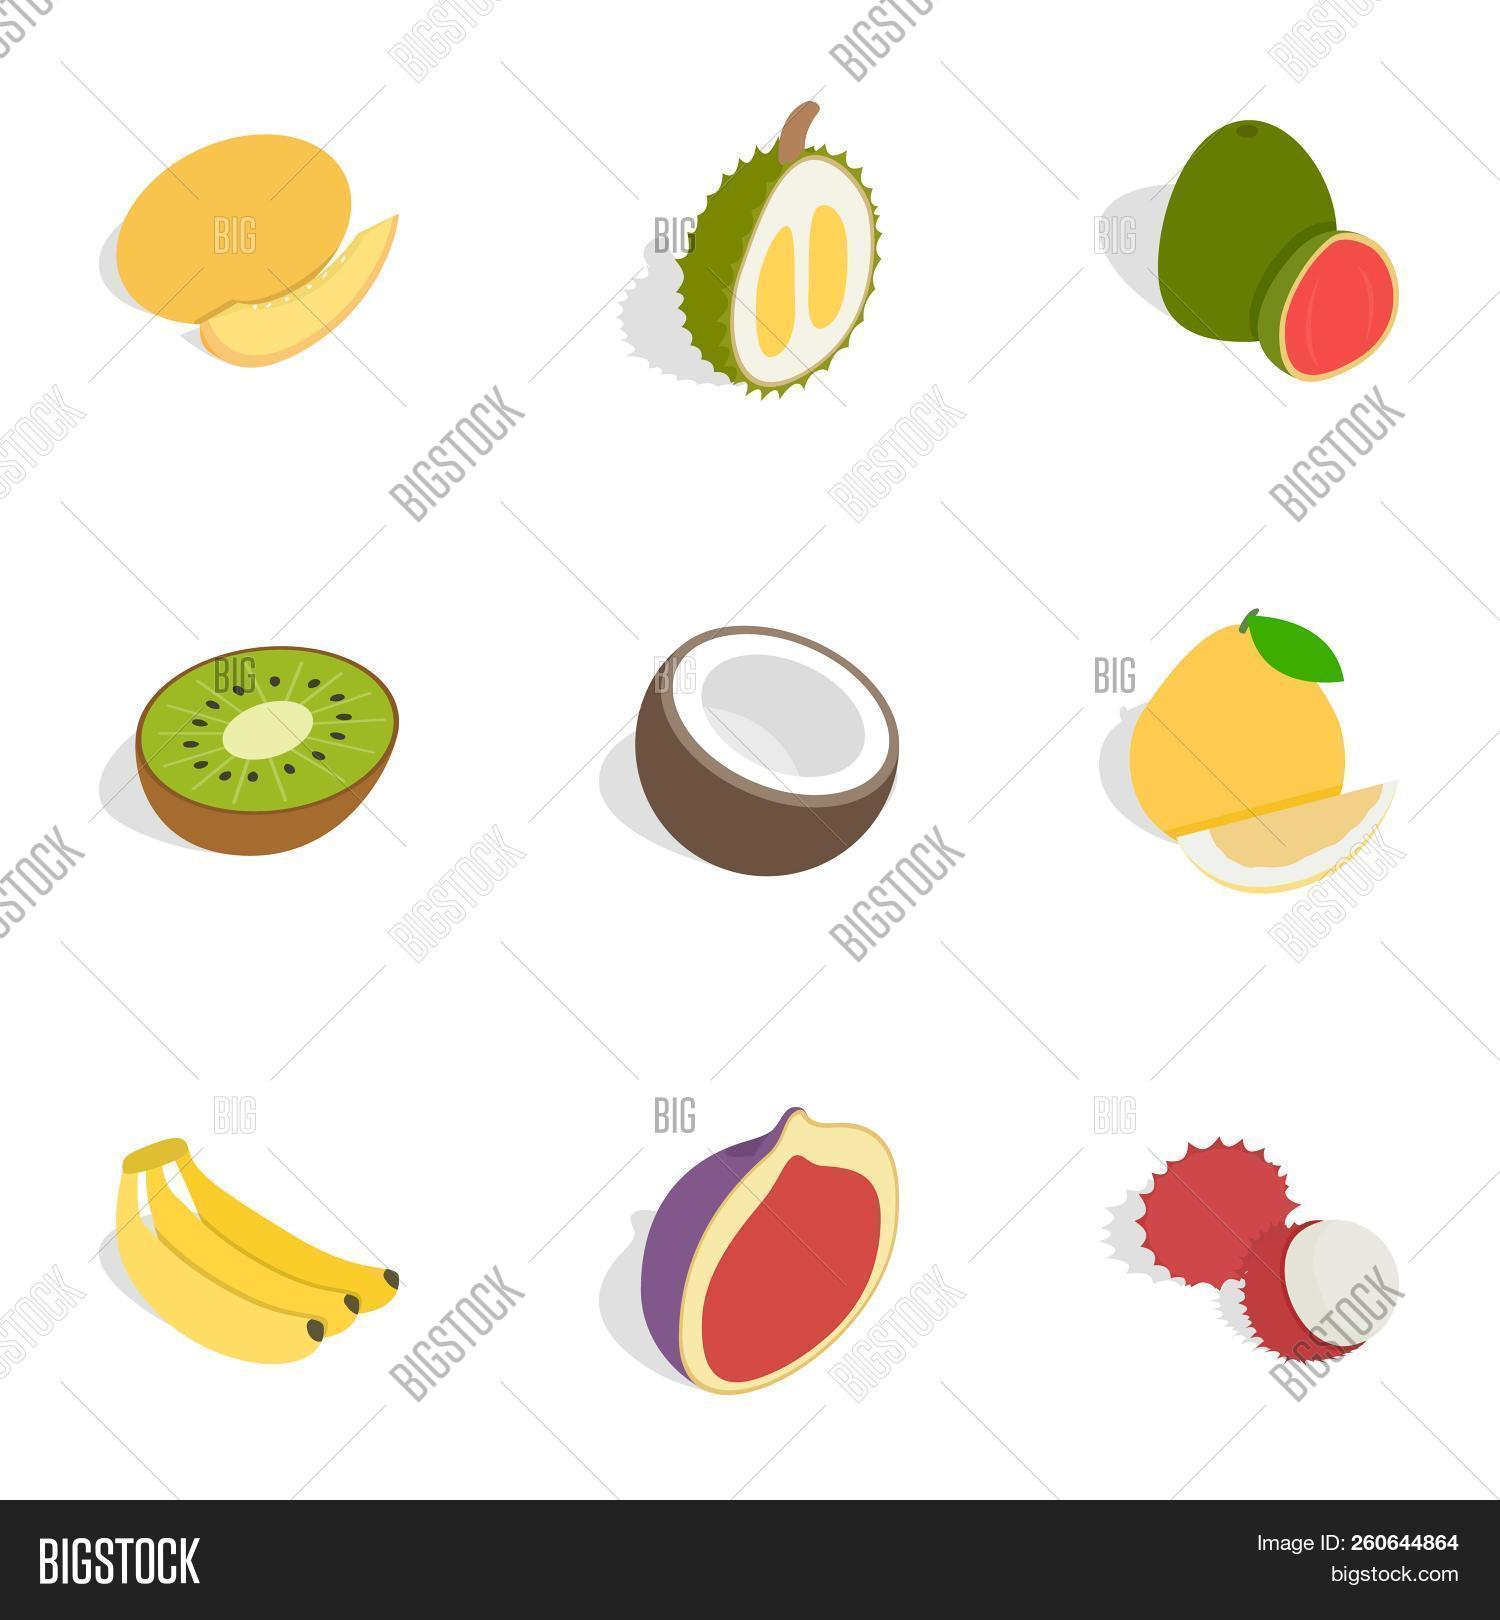 3d,appetizing,banana,berry,bright,cherry,citru,coconut,collection,delicious,dessert,diet,durian,element,exotic,food,fresh,fruit,grape,guava,harvest,health,healthy,icon,illustration,ingredient,isolated,isometric,kitchen,kiwi,leaf,market,natural,nutrition,pear,plum,rambutan,raw,ripe,set,snack,summer,sweet,tasty,tropical,vegan,vegetarian,vitamin,watermelon